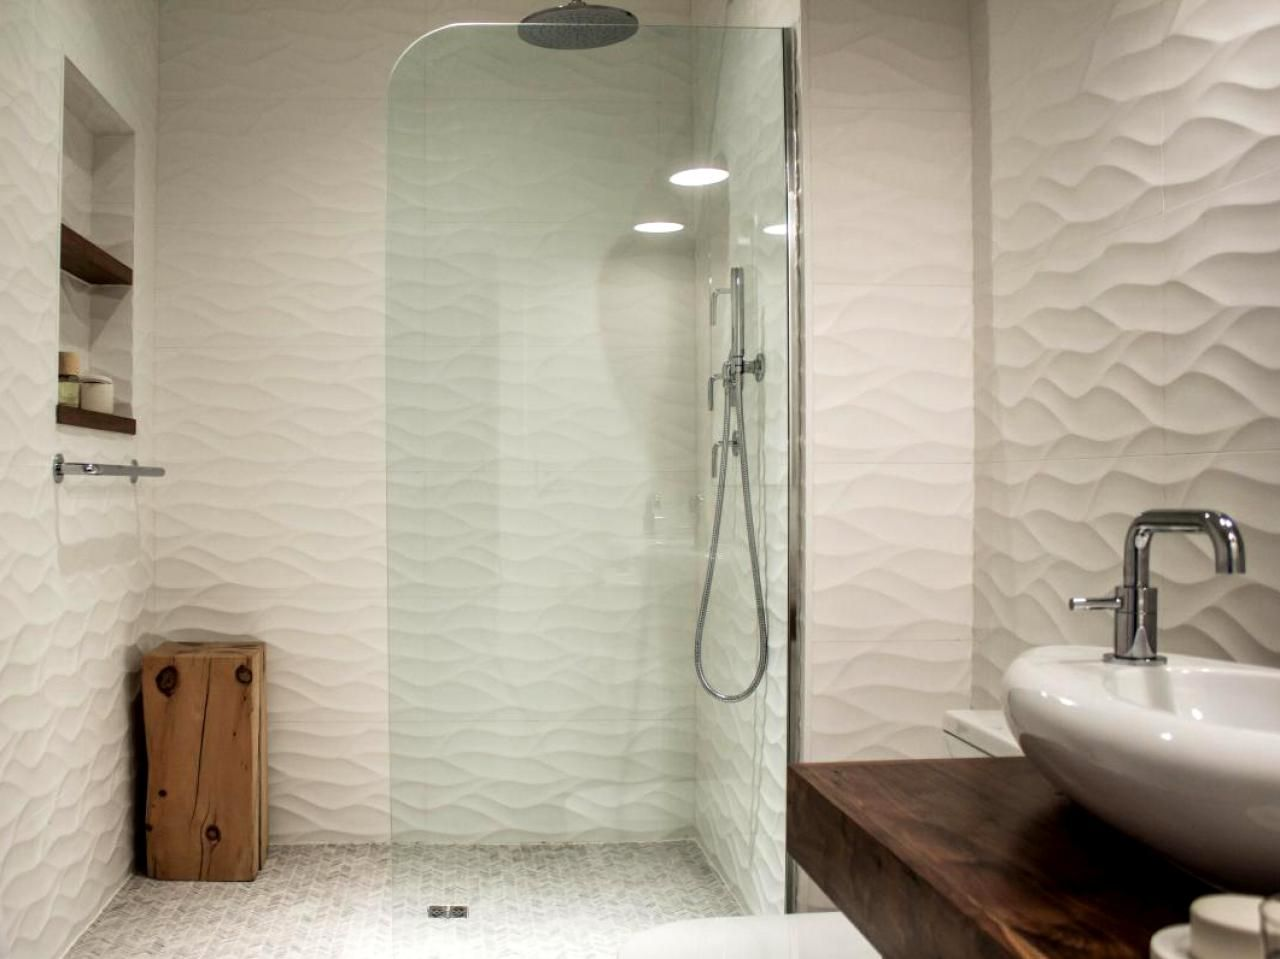 Bathroom Remodeling Trends 2015 10 best bathroom remodeling trends | bath crashers | diy | bitty